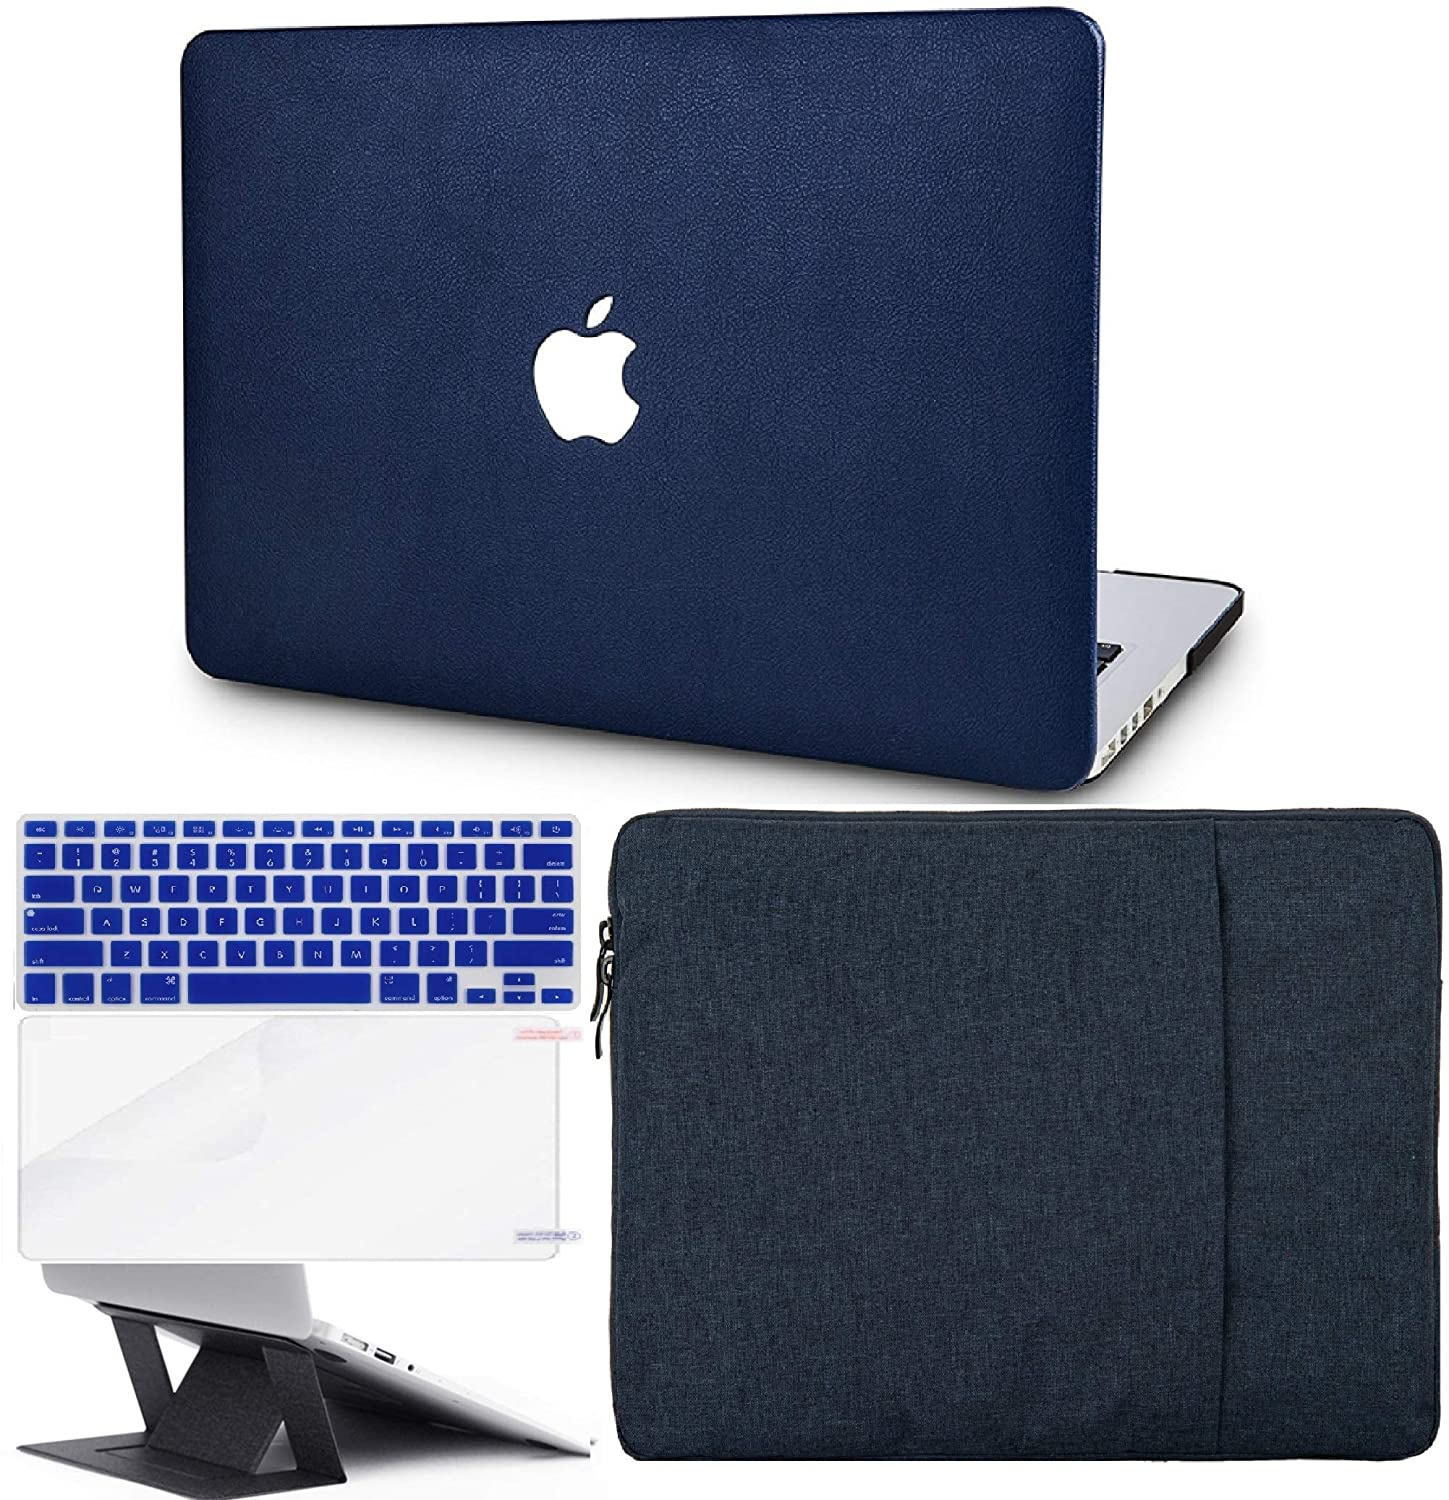 KECC Laptop Case for Old MacBook Pro 13 (CD Drive) w/Keyboard Cover + Sleeve + Screen Protector + Laptop Stand (5 in 1 Bundle) ltalian Leather Case A1278 (Dark Blue Leather)